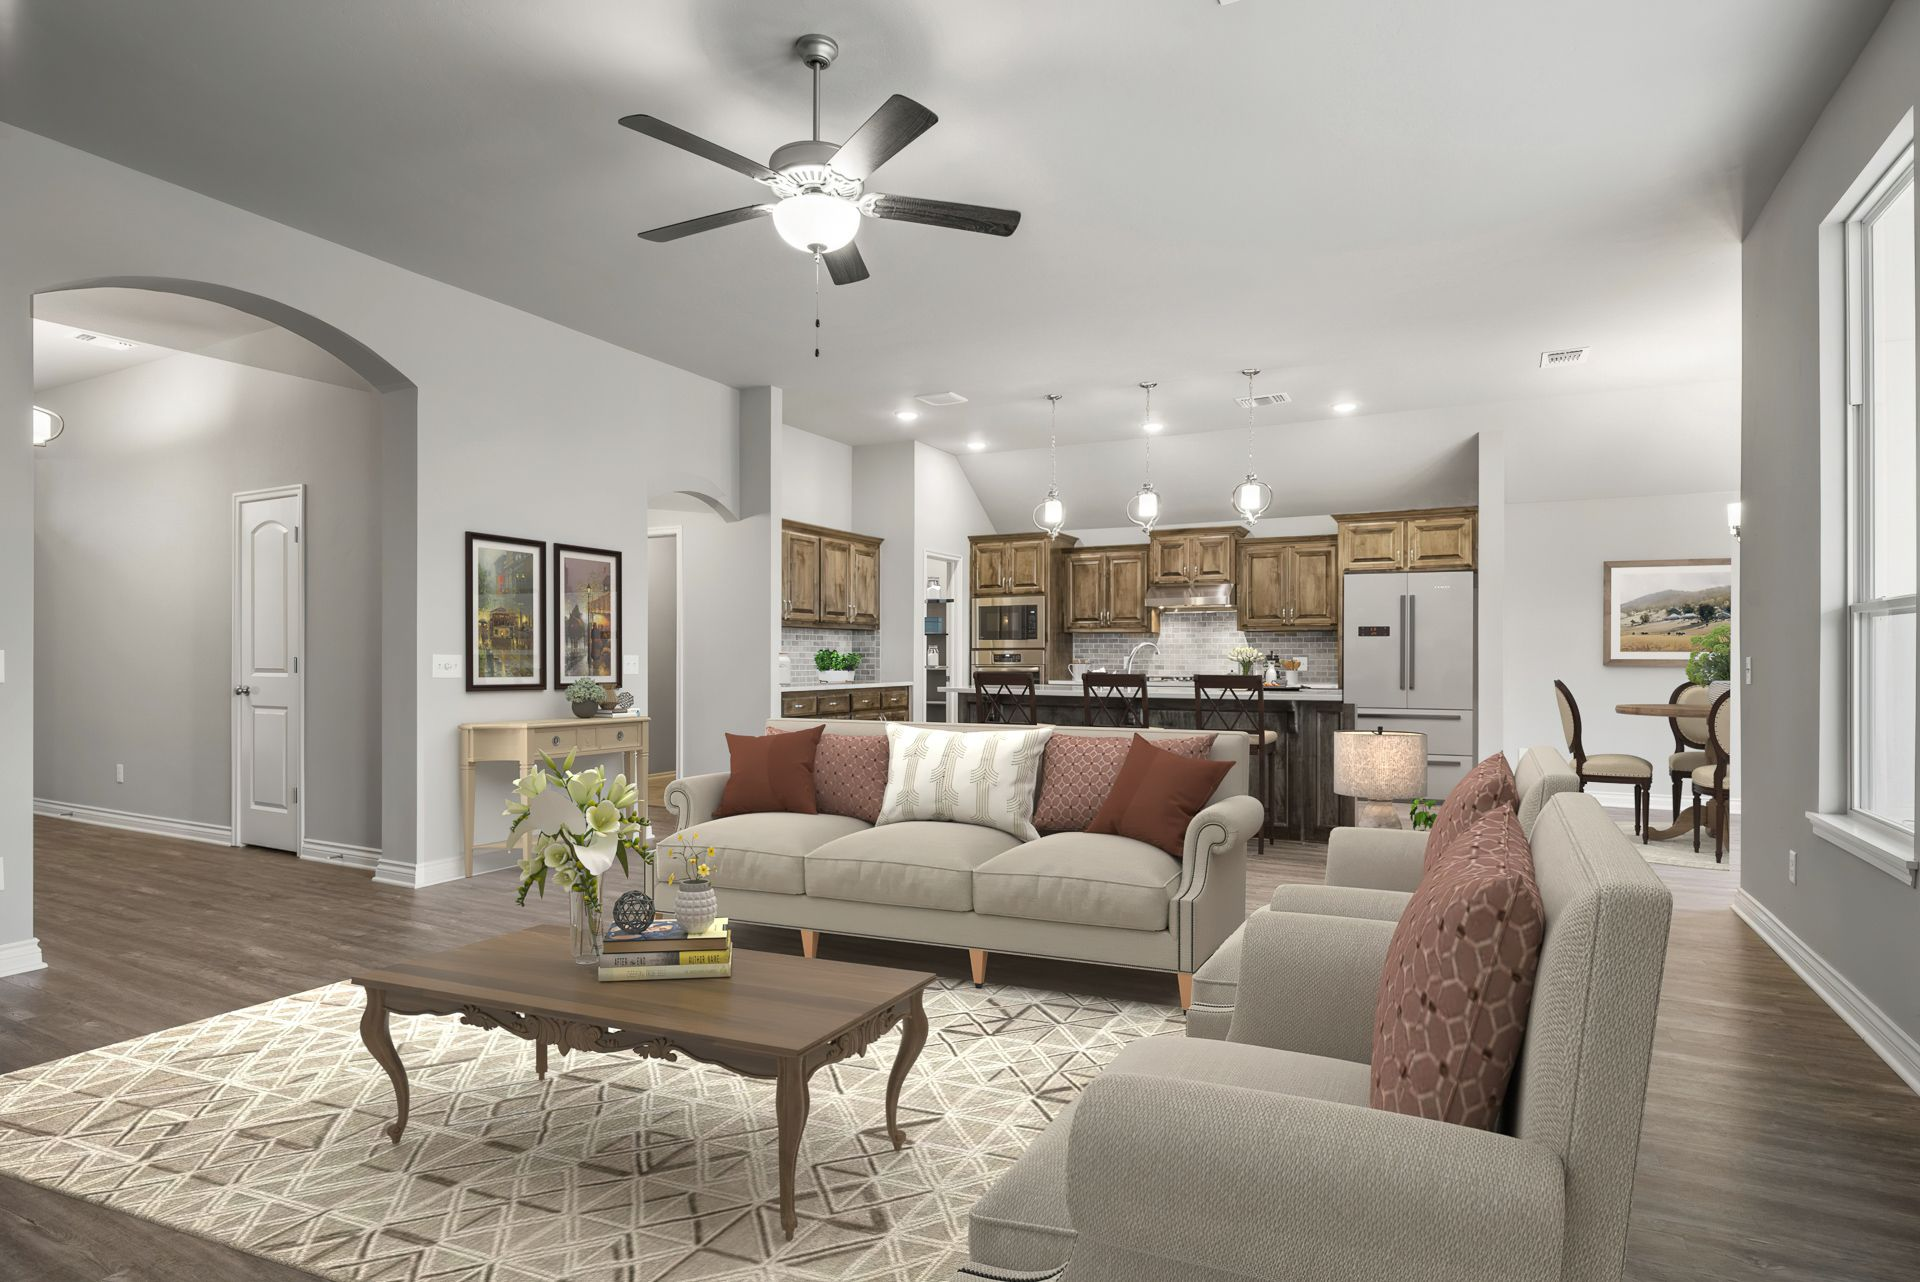 Living Area featured in the Langley 3-Car By Ideal Homes in Oklahoma City, OK